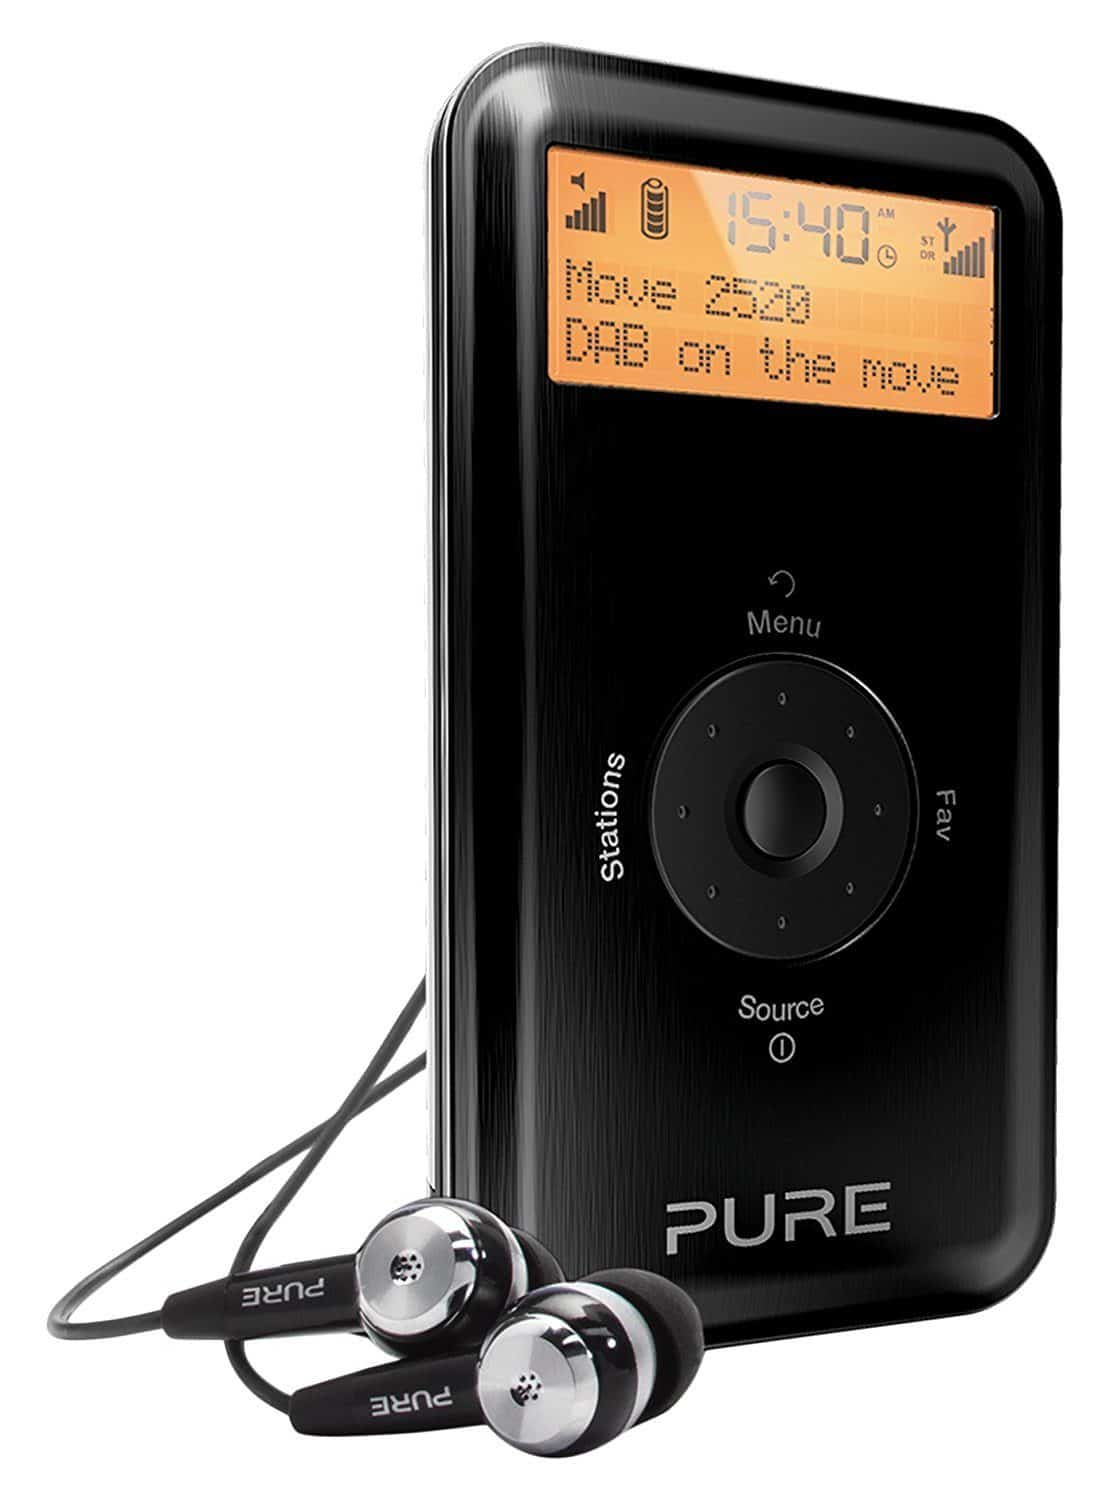 Best Small Portable DAB Radio – Pure